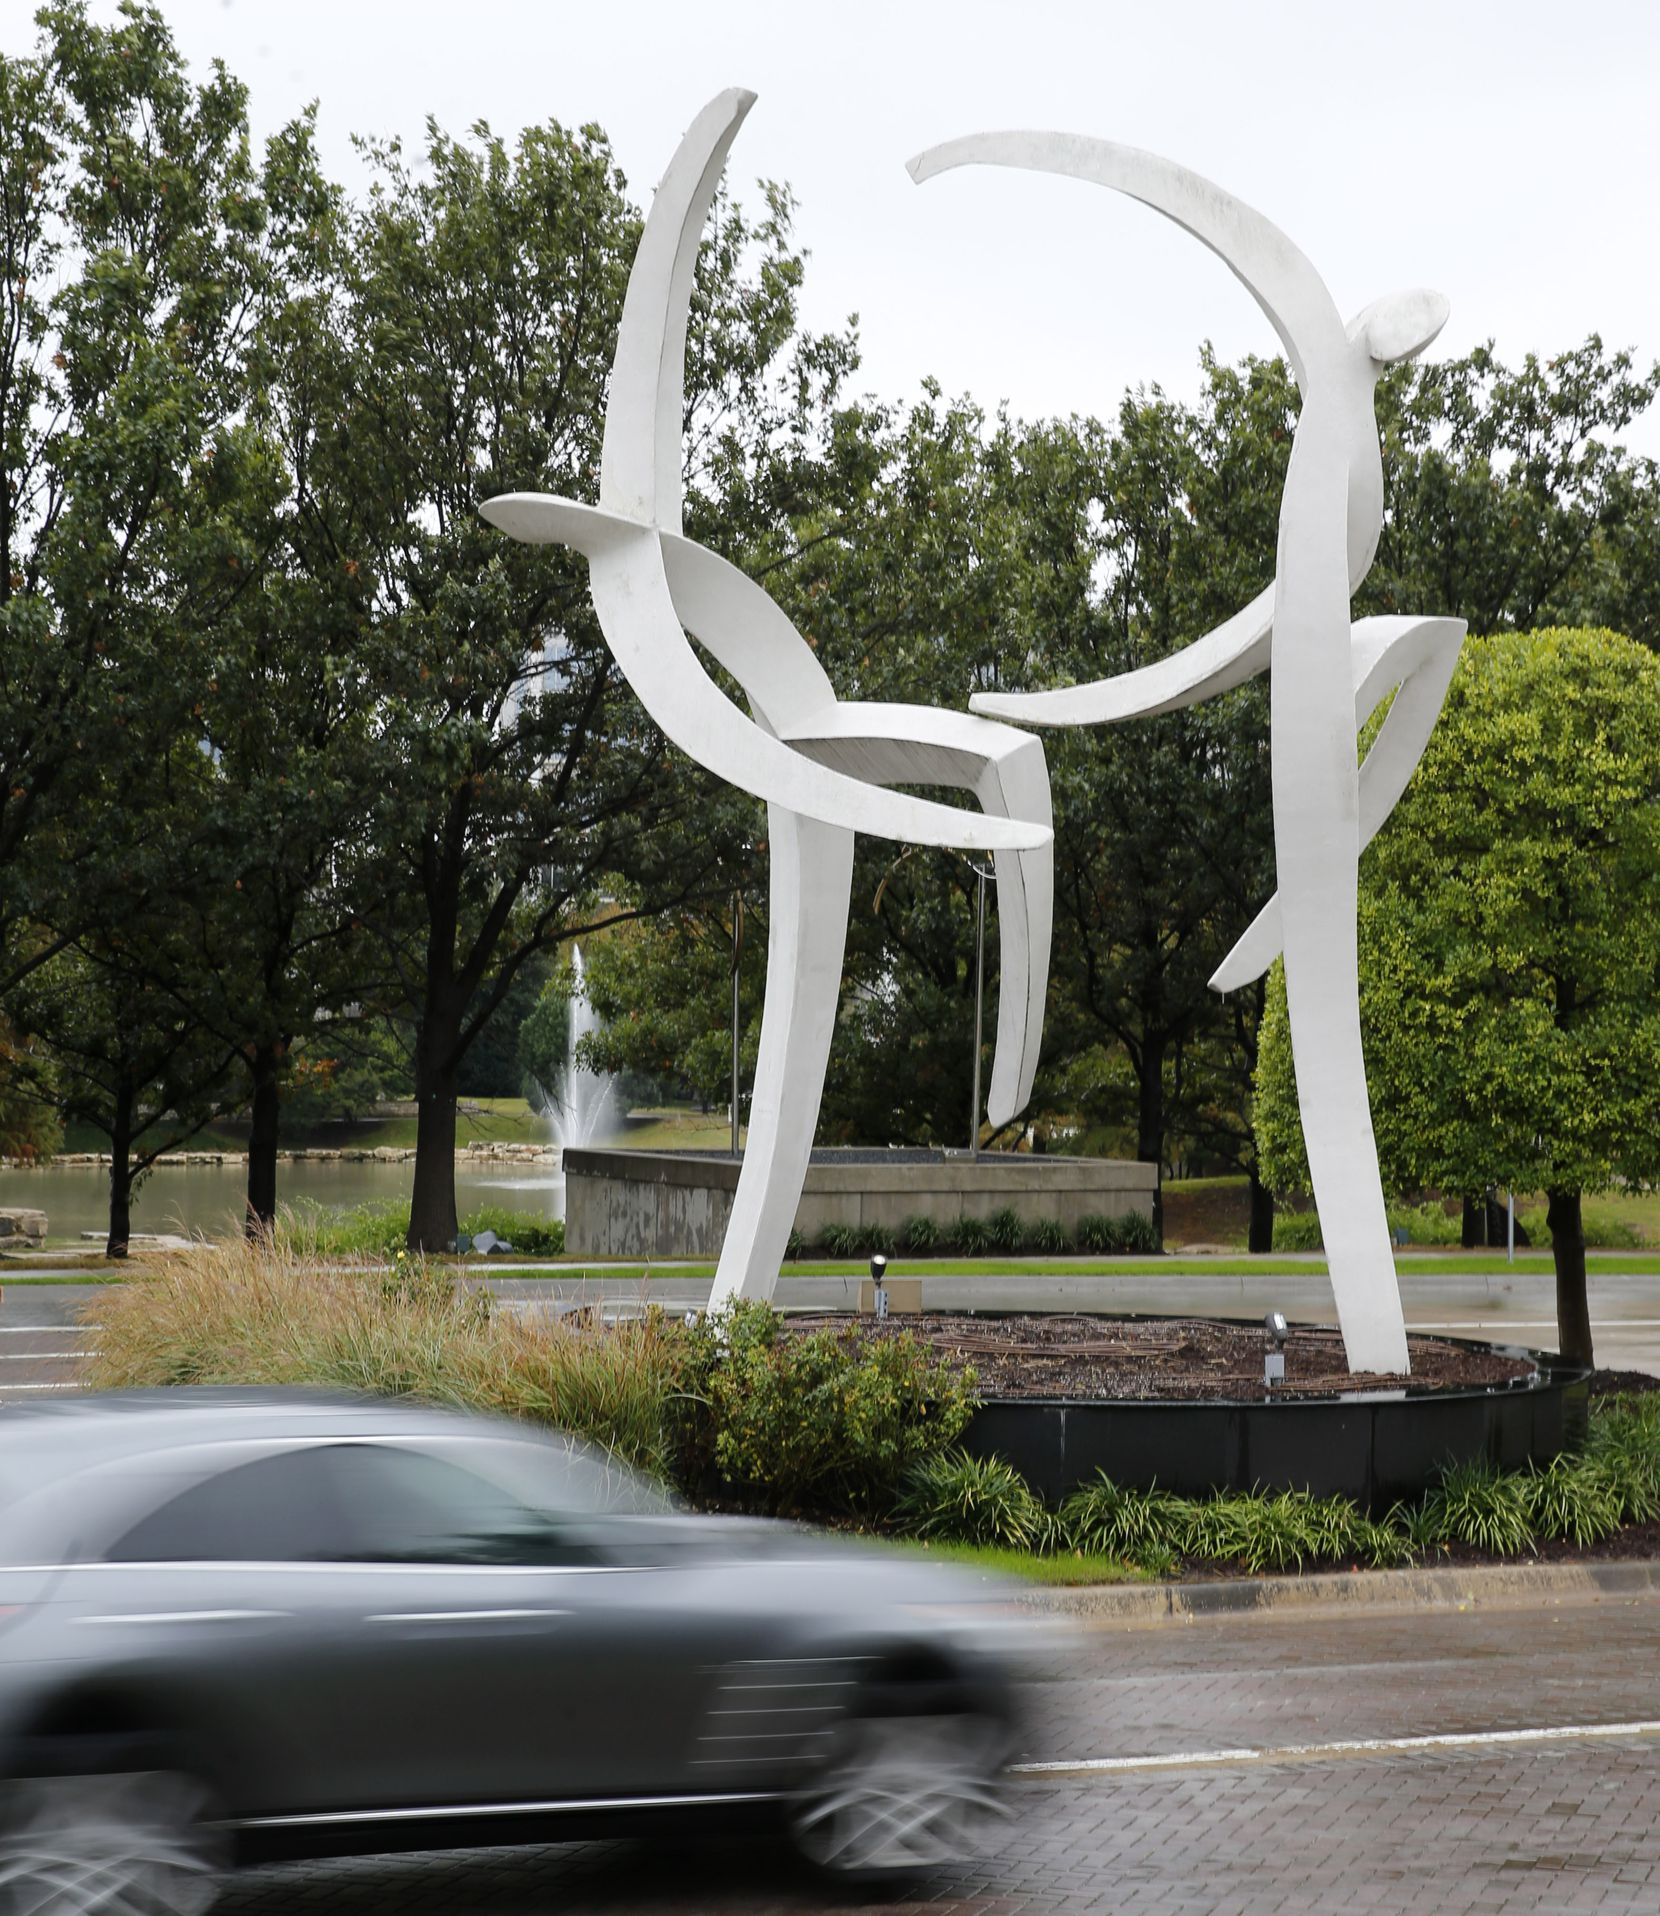 """Dancers MM,"" by artist Jerry Daniel, is the entry sculpture at Hall Office Park and the Texas Sculpture Garden in Frisco as well as the inspiration for the park's logo."